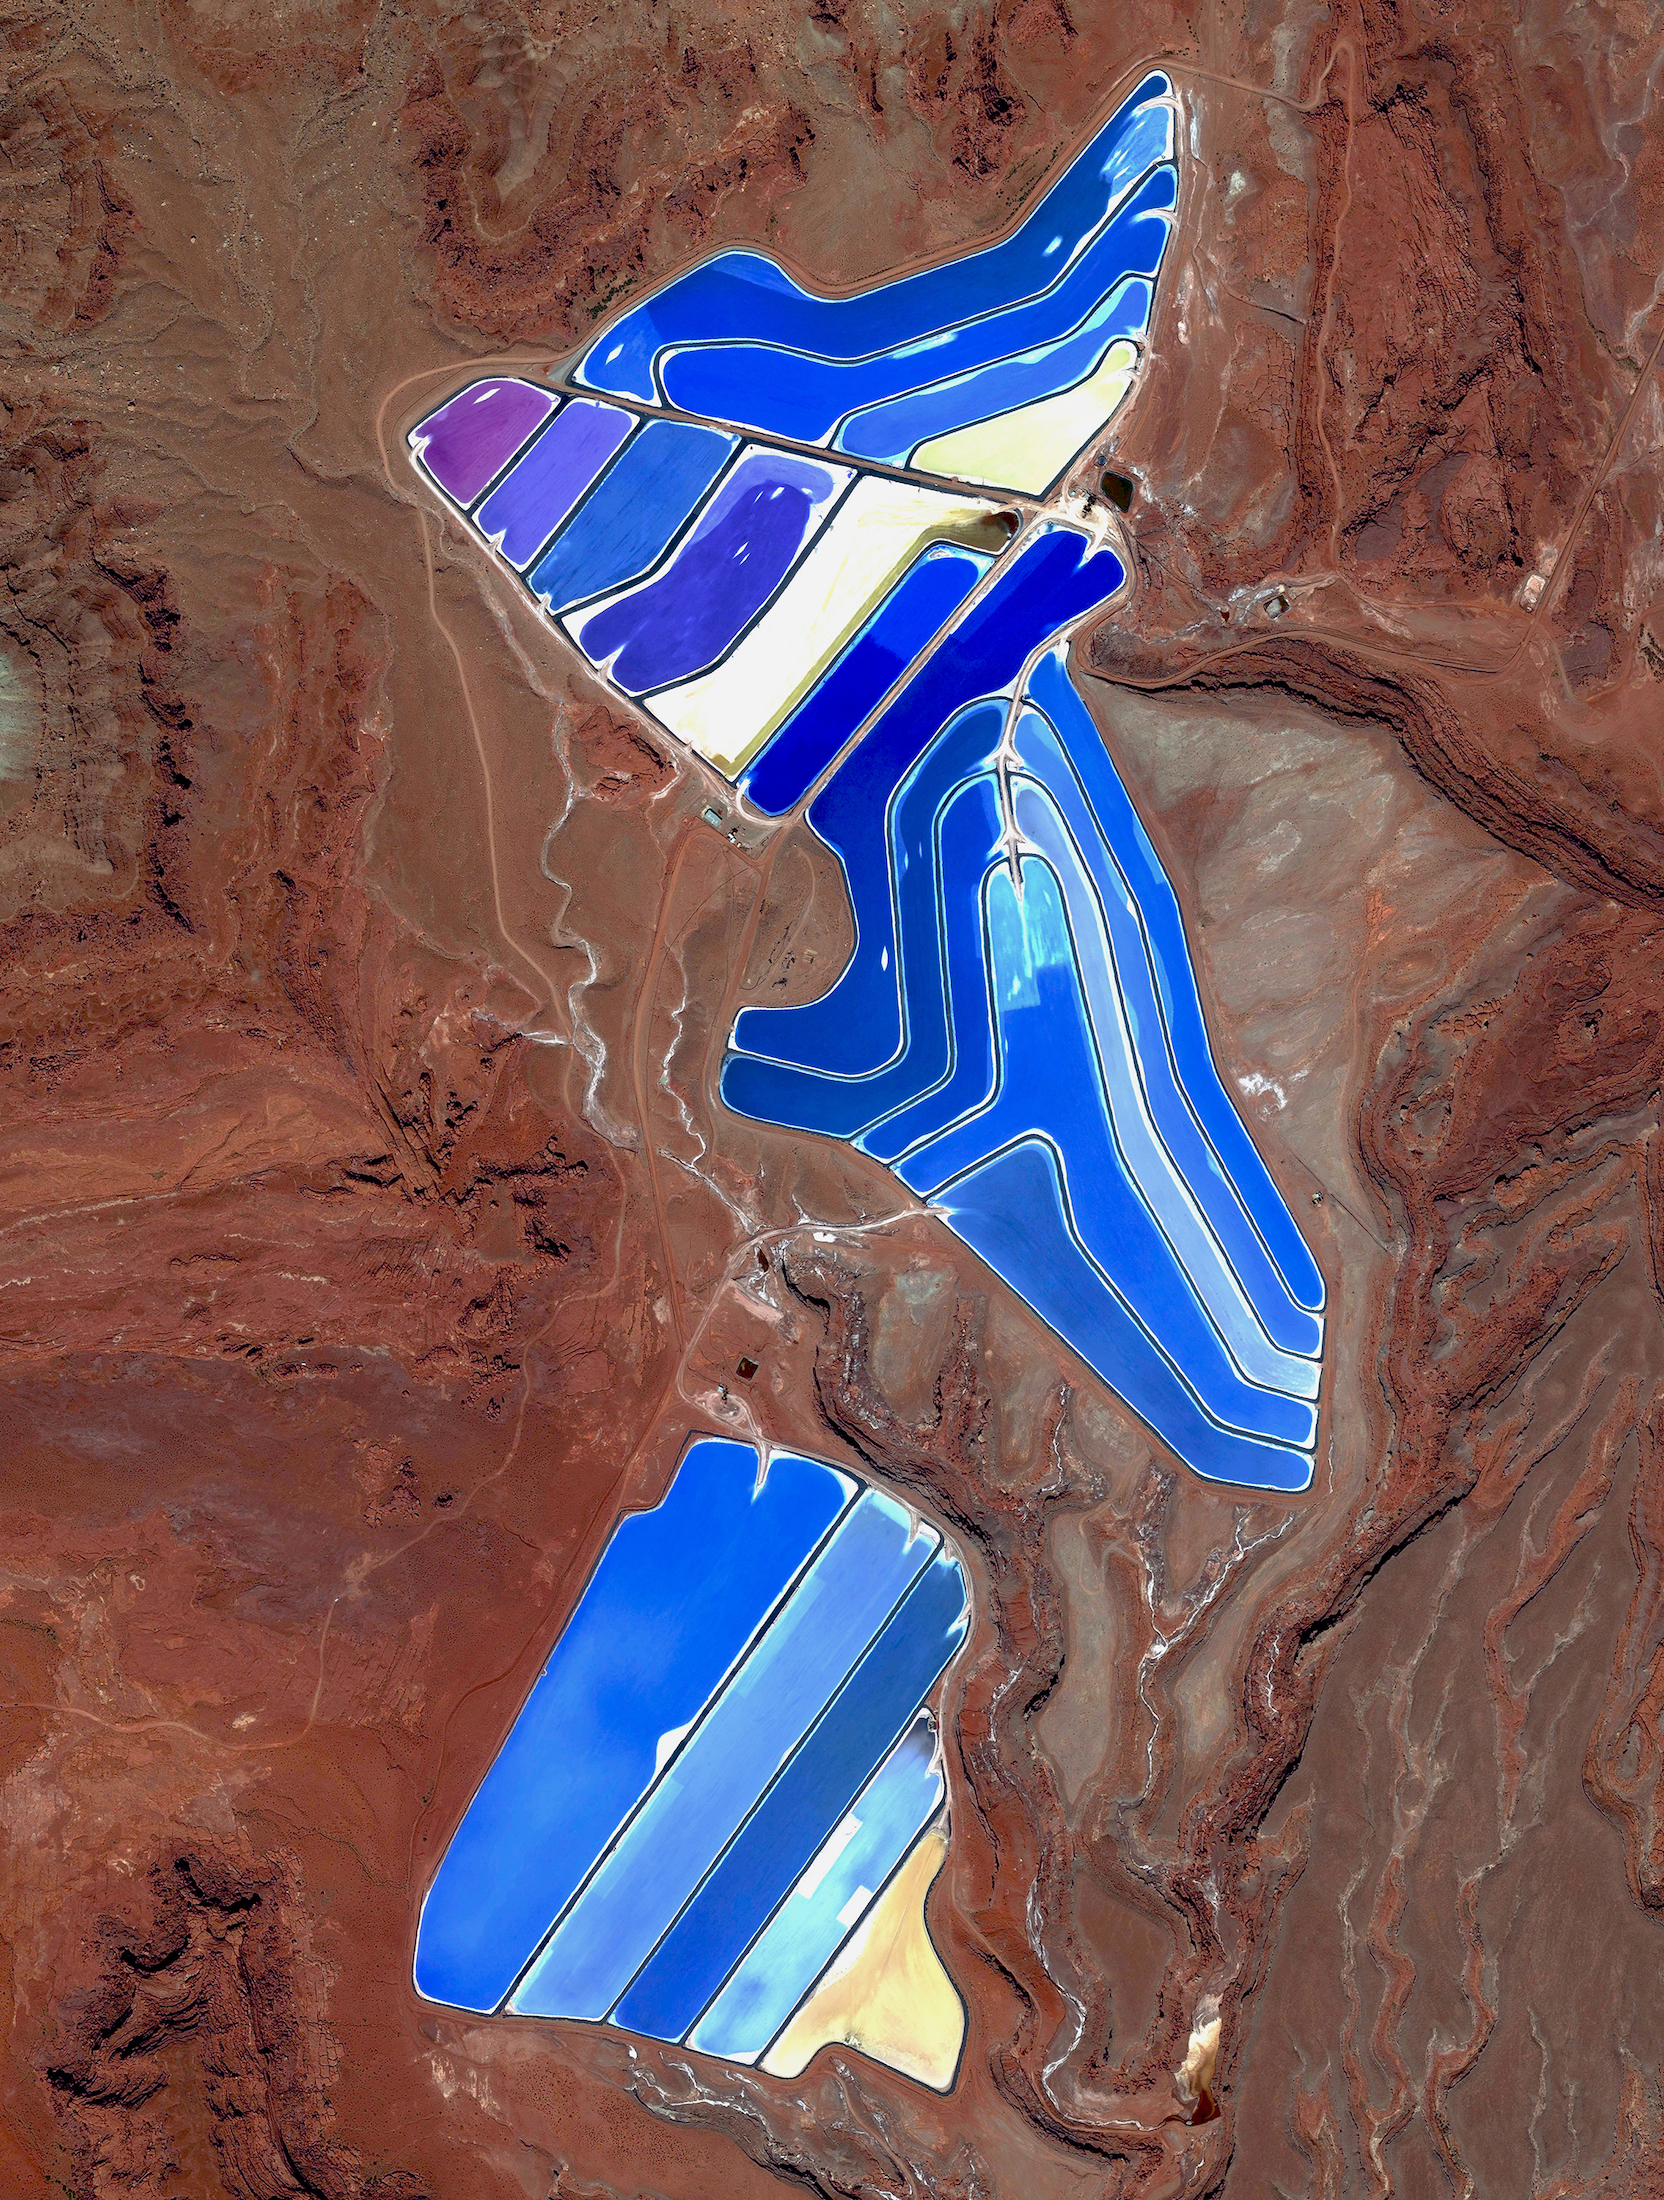 1/18/2017  Moab Evaporation Ponds  Moab, Utah, USA  38·485579°, –109·684611°    Evaporation ponds are visible at the potash mine in Moab, Utah, USA. The mine produces muriate of potash, a potassium-containing salt that is a major component in fertilizers. The salt is pumped to the surface from underground brines and dried in massive solar ponds that vibrantly extend across the landscape. As the water evaporates over the course of 300 days, the salts crystallize out. The blue color seen here occurs because the water is dyed a deep blue, as darker water absorbs more sunlight and heat, thereby reducing the amount of time it takes for the water to evaporate and the potash to crystallize.  This image was also just featured in a fantastic interview by Perrie Hartz at Indigare Magazine. You can check it out  here .